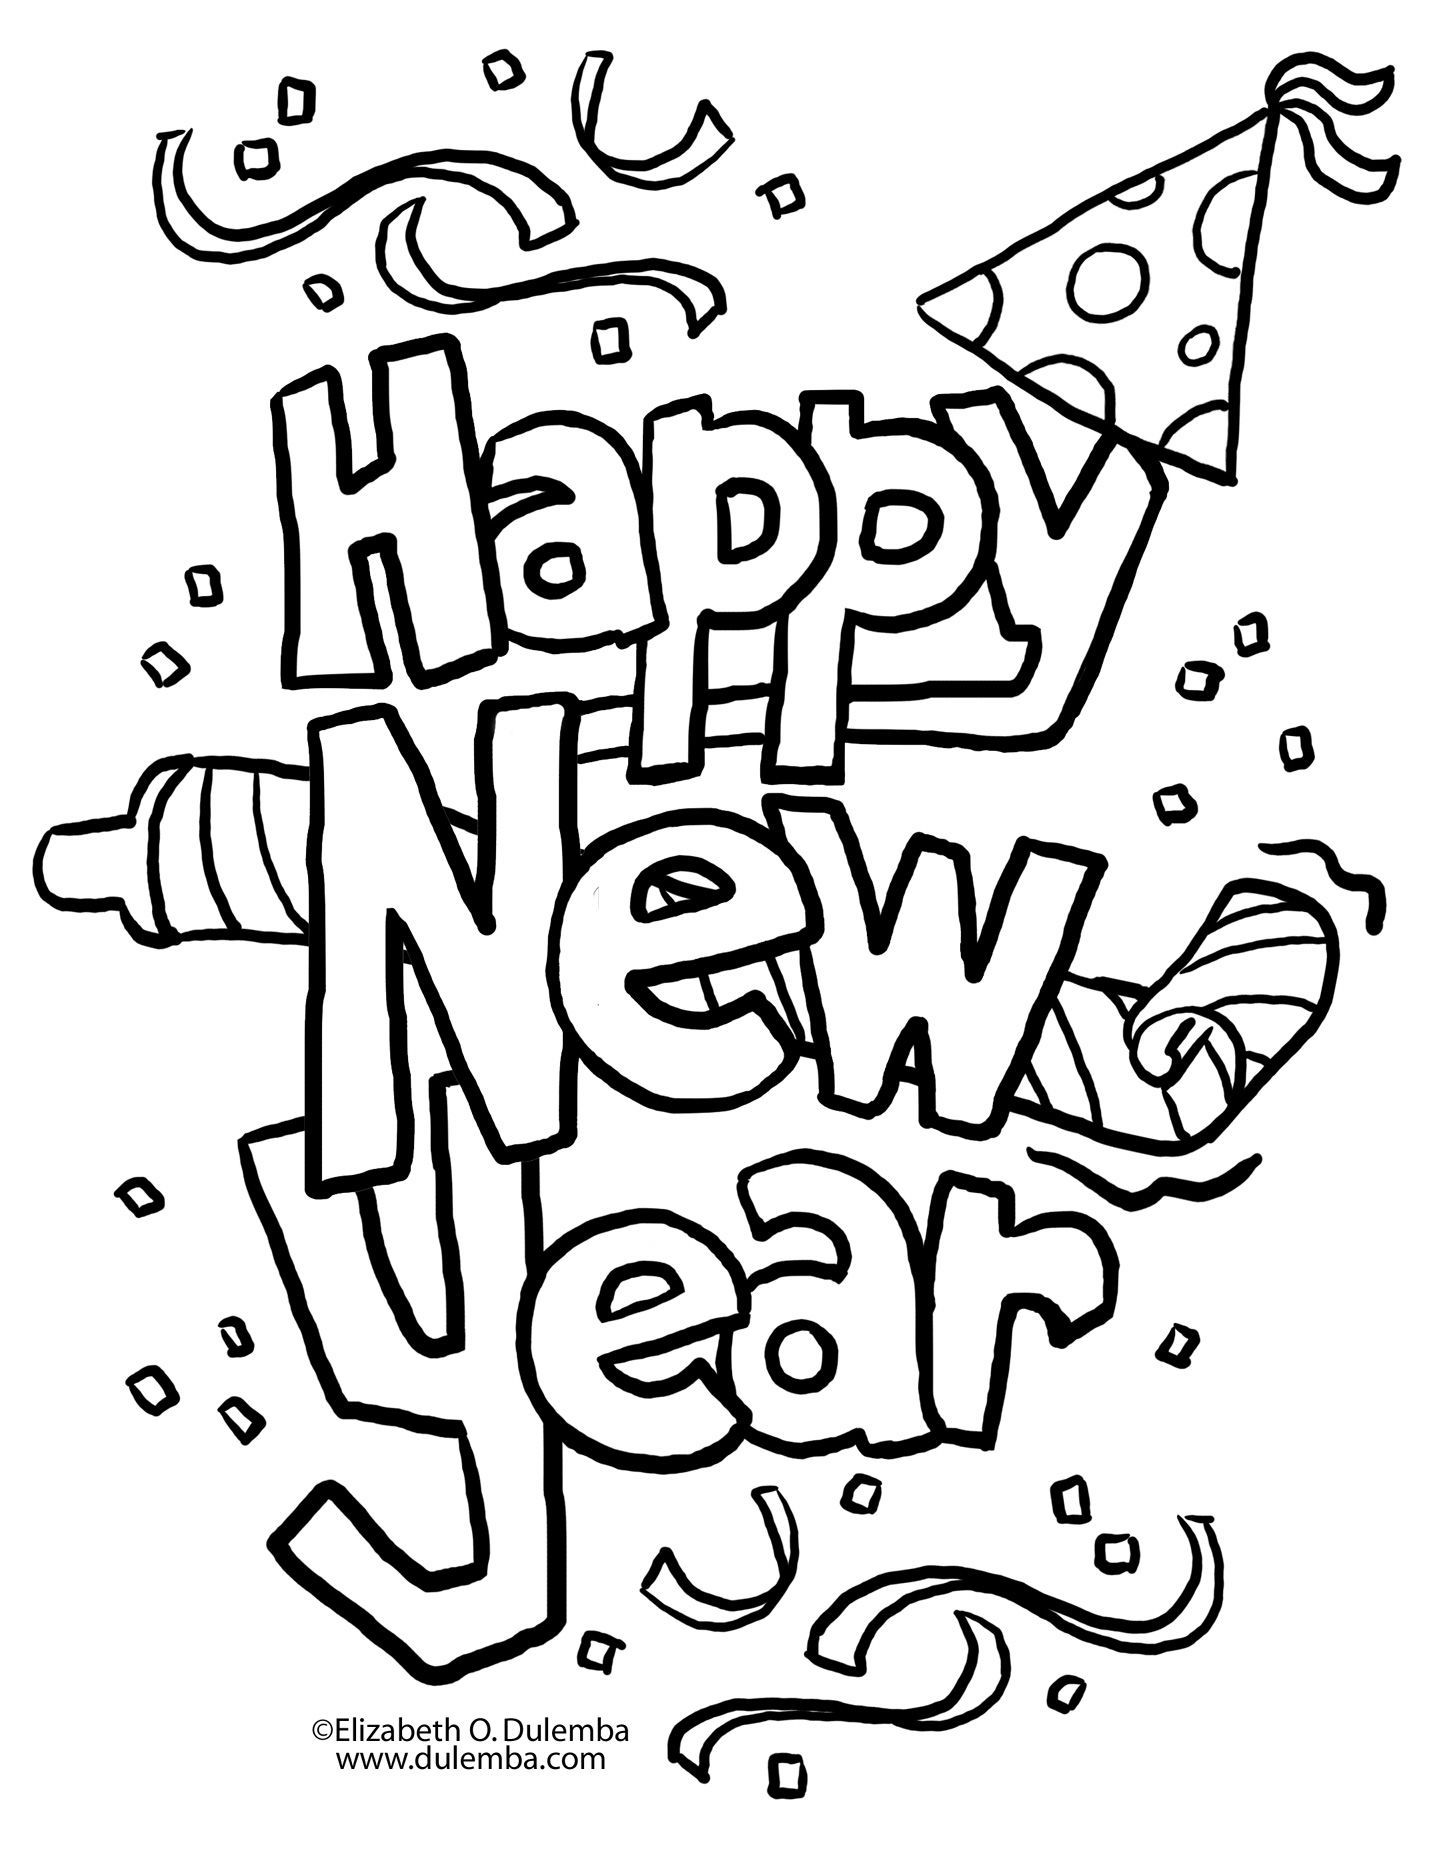 Free Print Out Happy New Year Clipart 2016 Coloring In Sheetshappy Activities Worksheets Pages For Kidsprint Party Hat